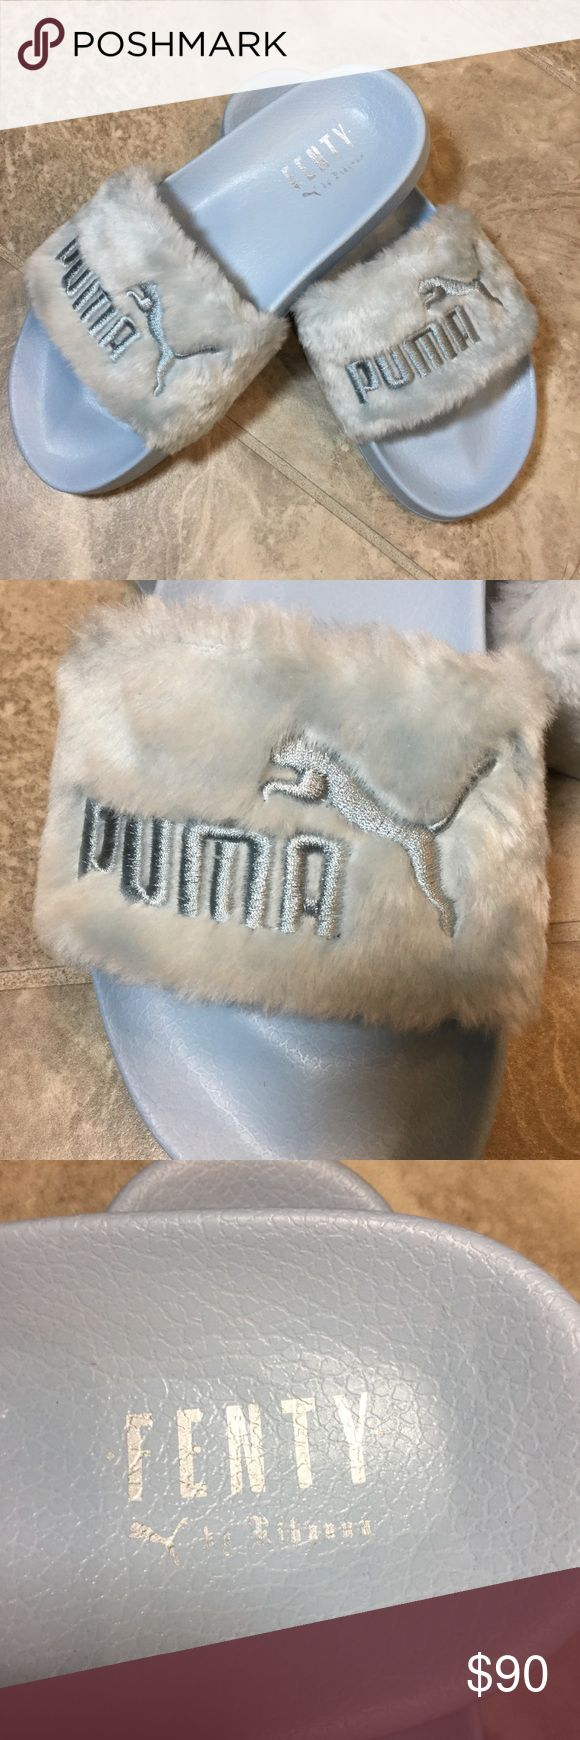 Fenty Puma by Rihanna Fur Slide The Fur Slide from the FENTY PUMA by Rihanna collection returns, but this time in three new seasonal spring colors. Making over a timeless PUMA performance sandal worn by soccer players off the field, its soft, comfortable design features a faux fur strap and a satin foam backing.  Features  Faux fur strap Satin foam strap backing FENTY PUMA by Rihanna logo at footbed Embroidered PUMA No. 1 Logo at strap Puma Shoes Sandals